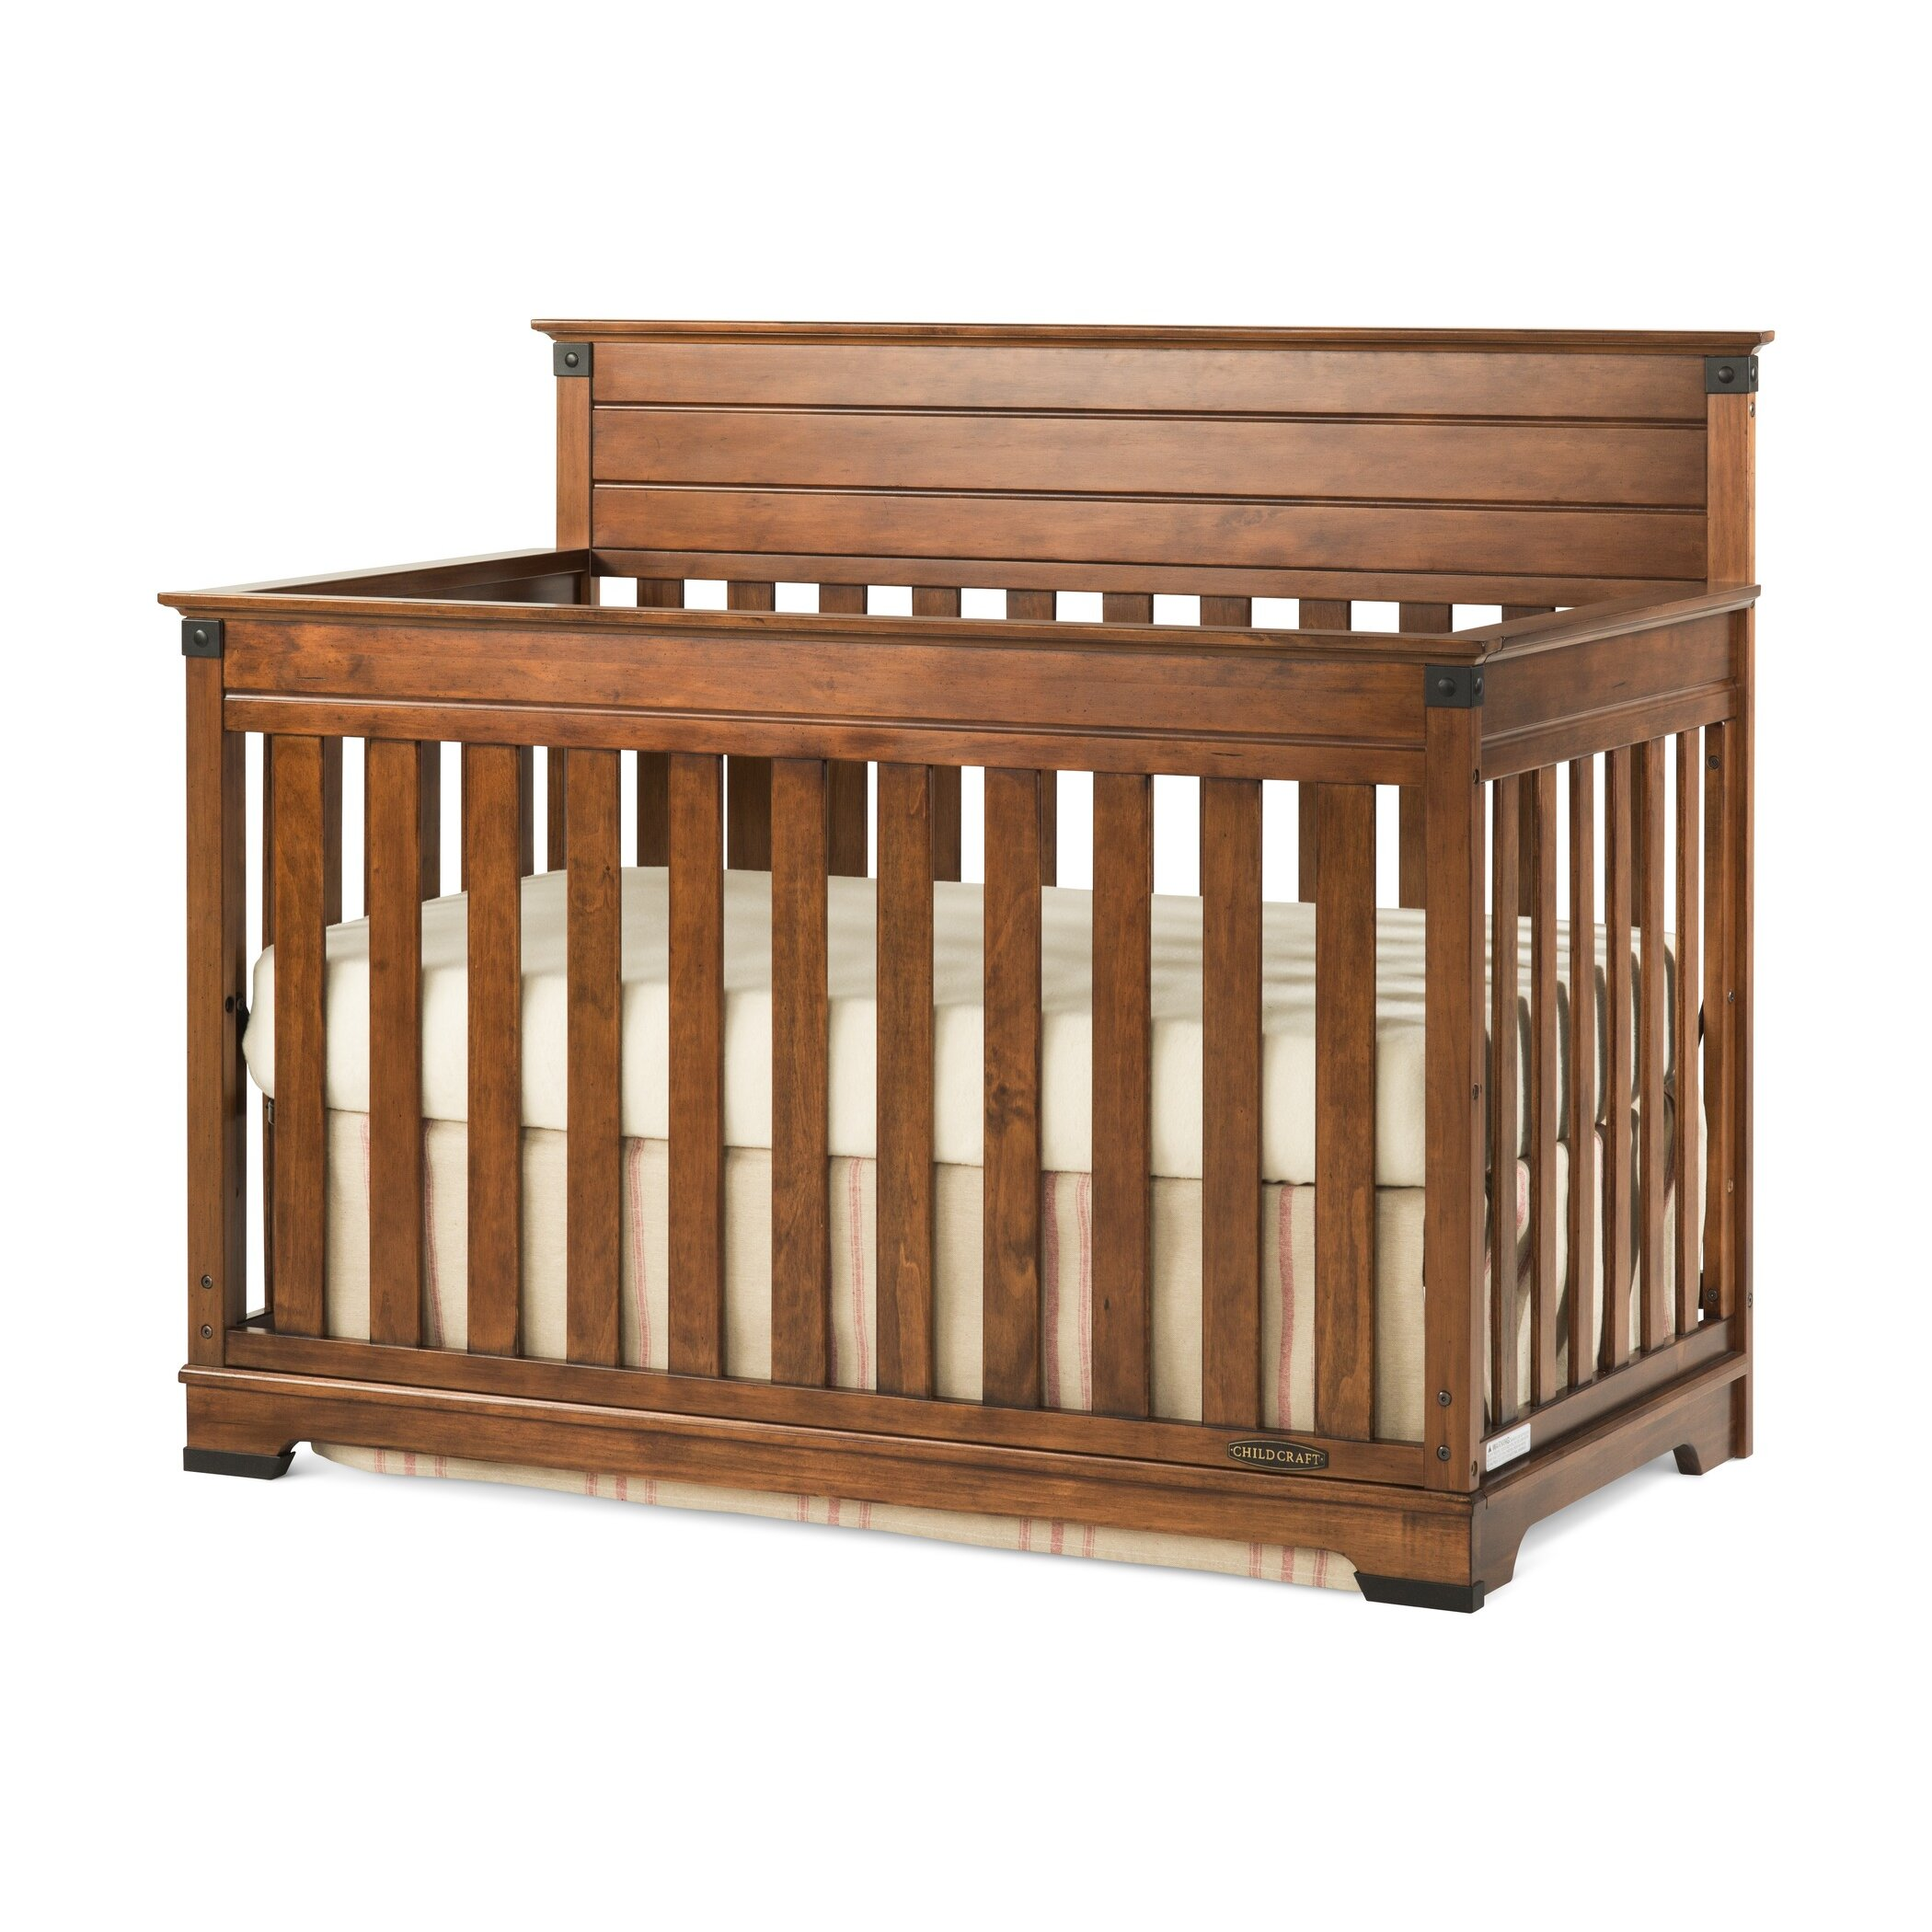 Wooden crib for babies - Child Craft Redmond Convertible Crib